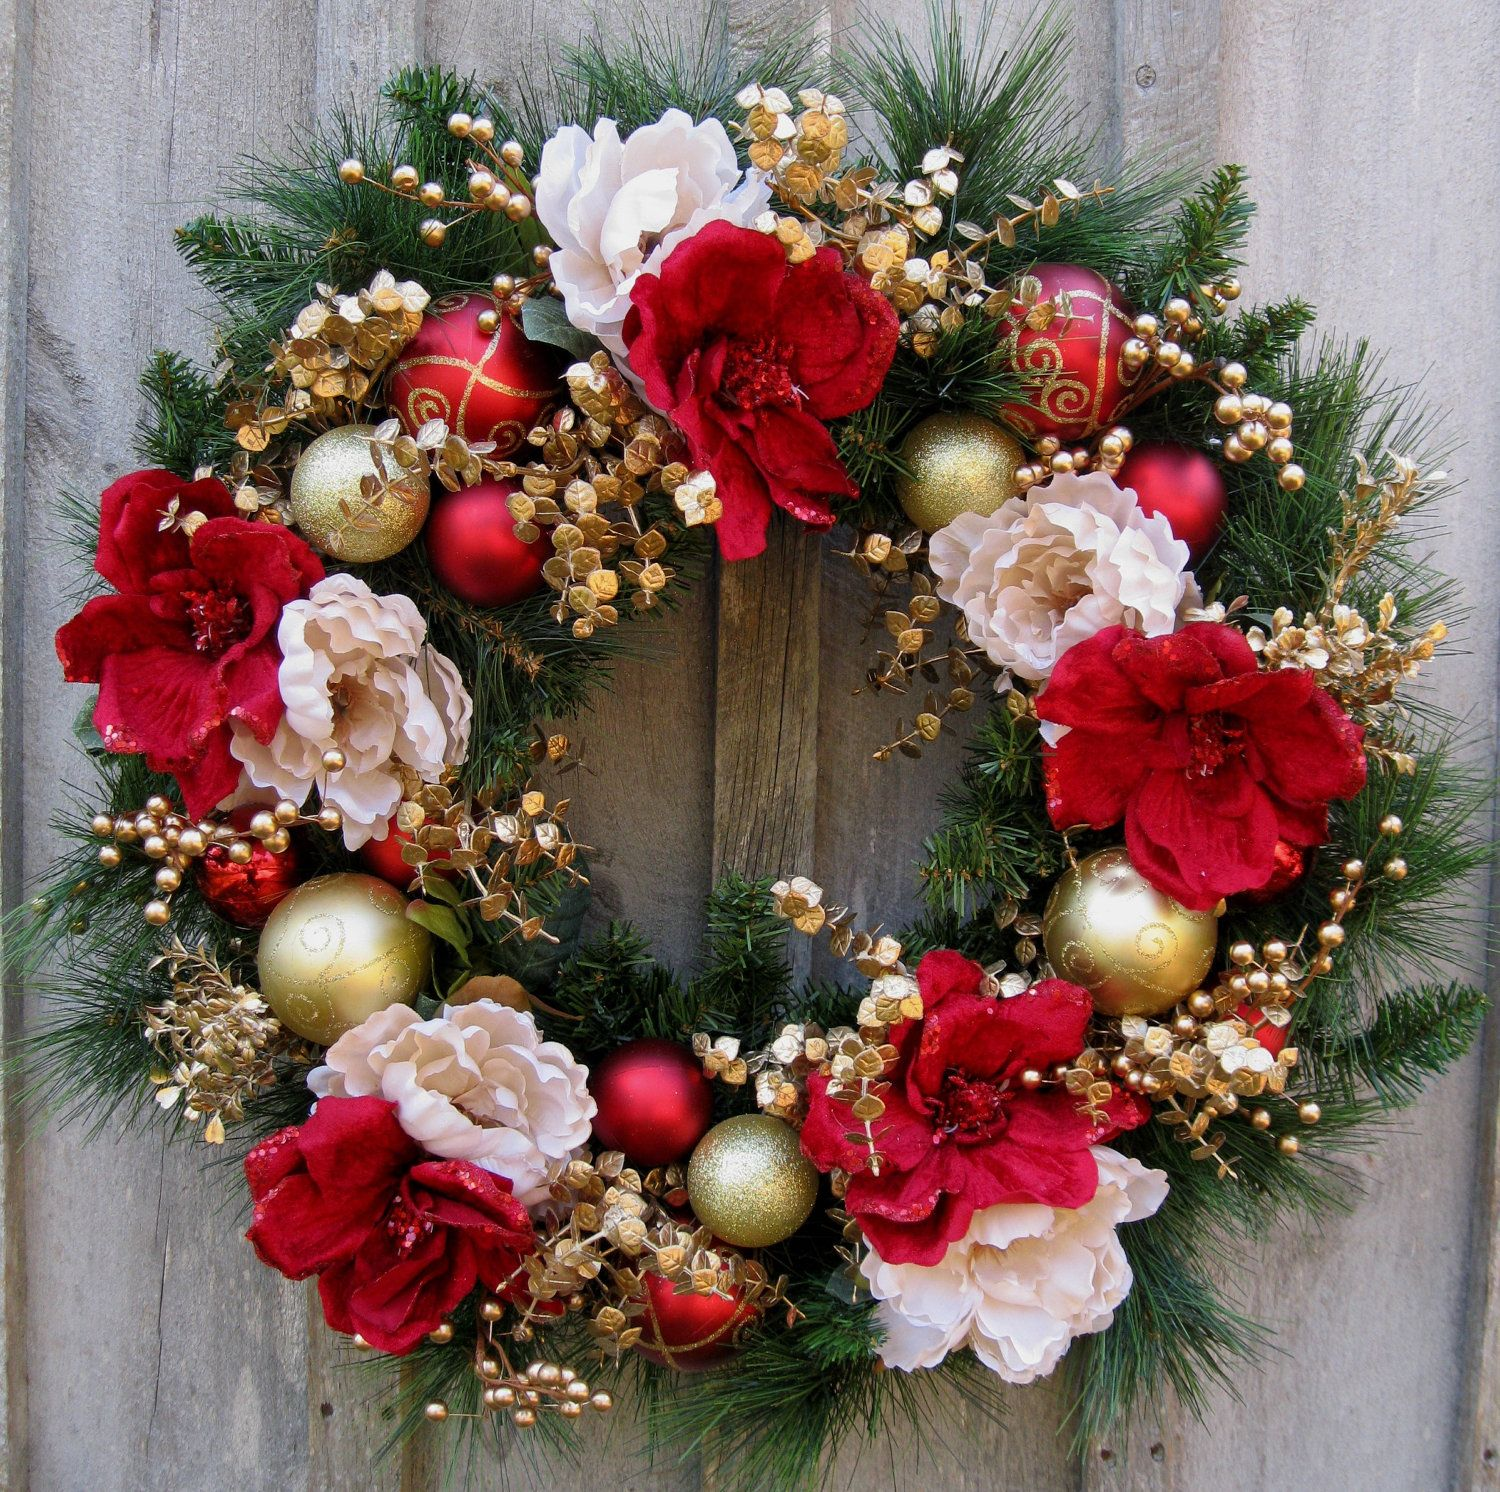 Designer Christmas Wreaths | Request a custom order and have something made  just for you.